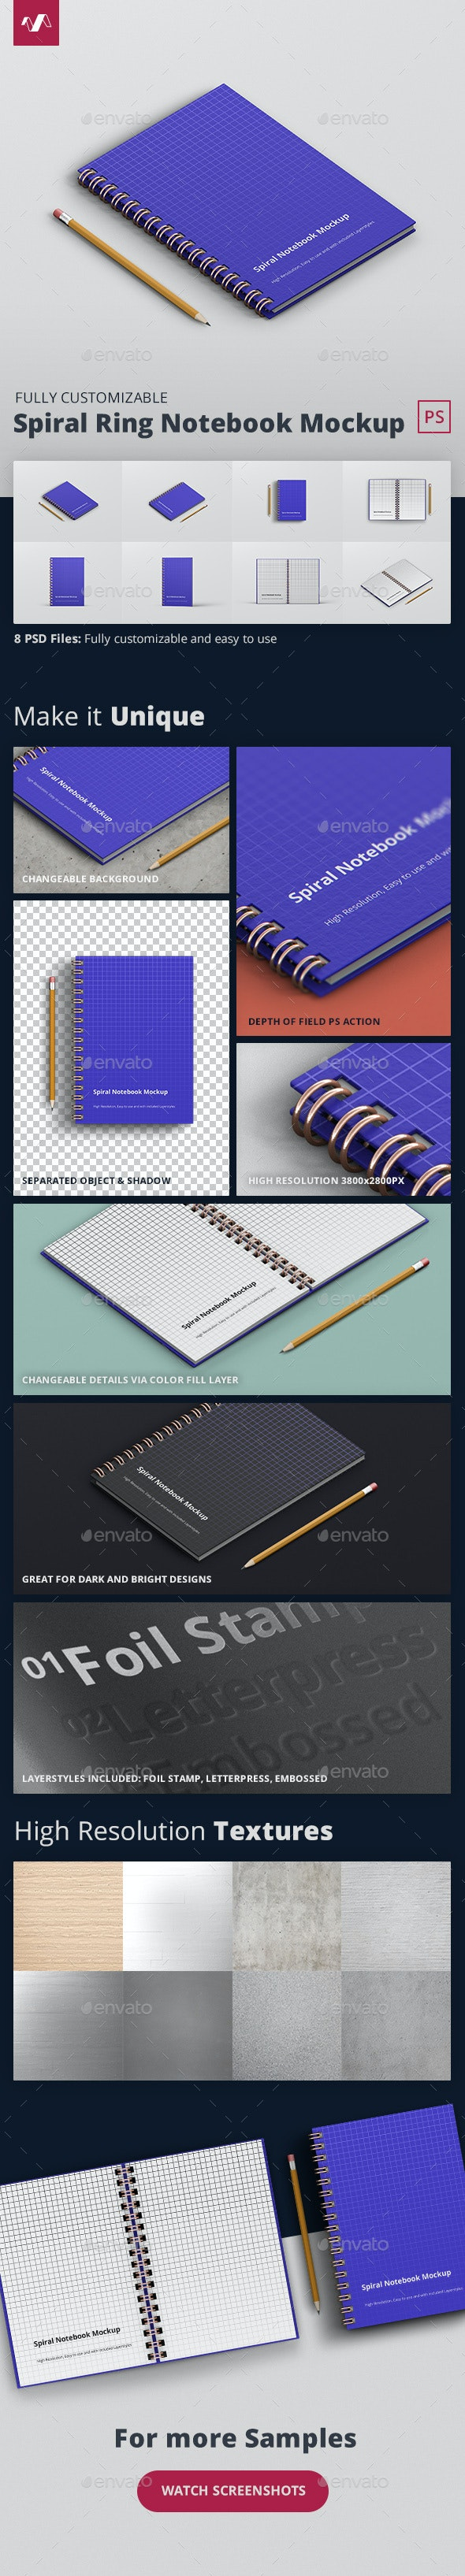 Spiral Ring Notebook Mockup - Books Print